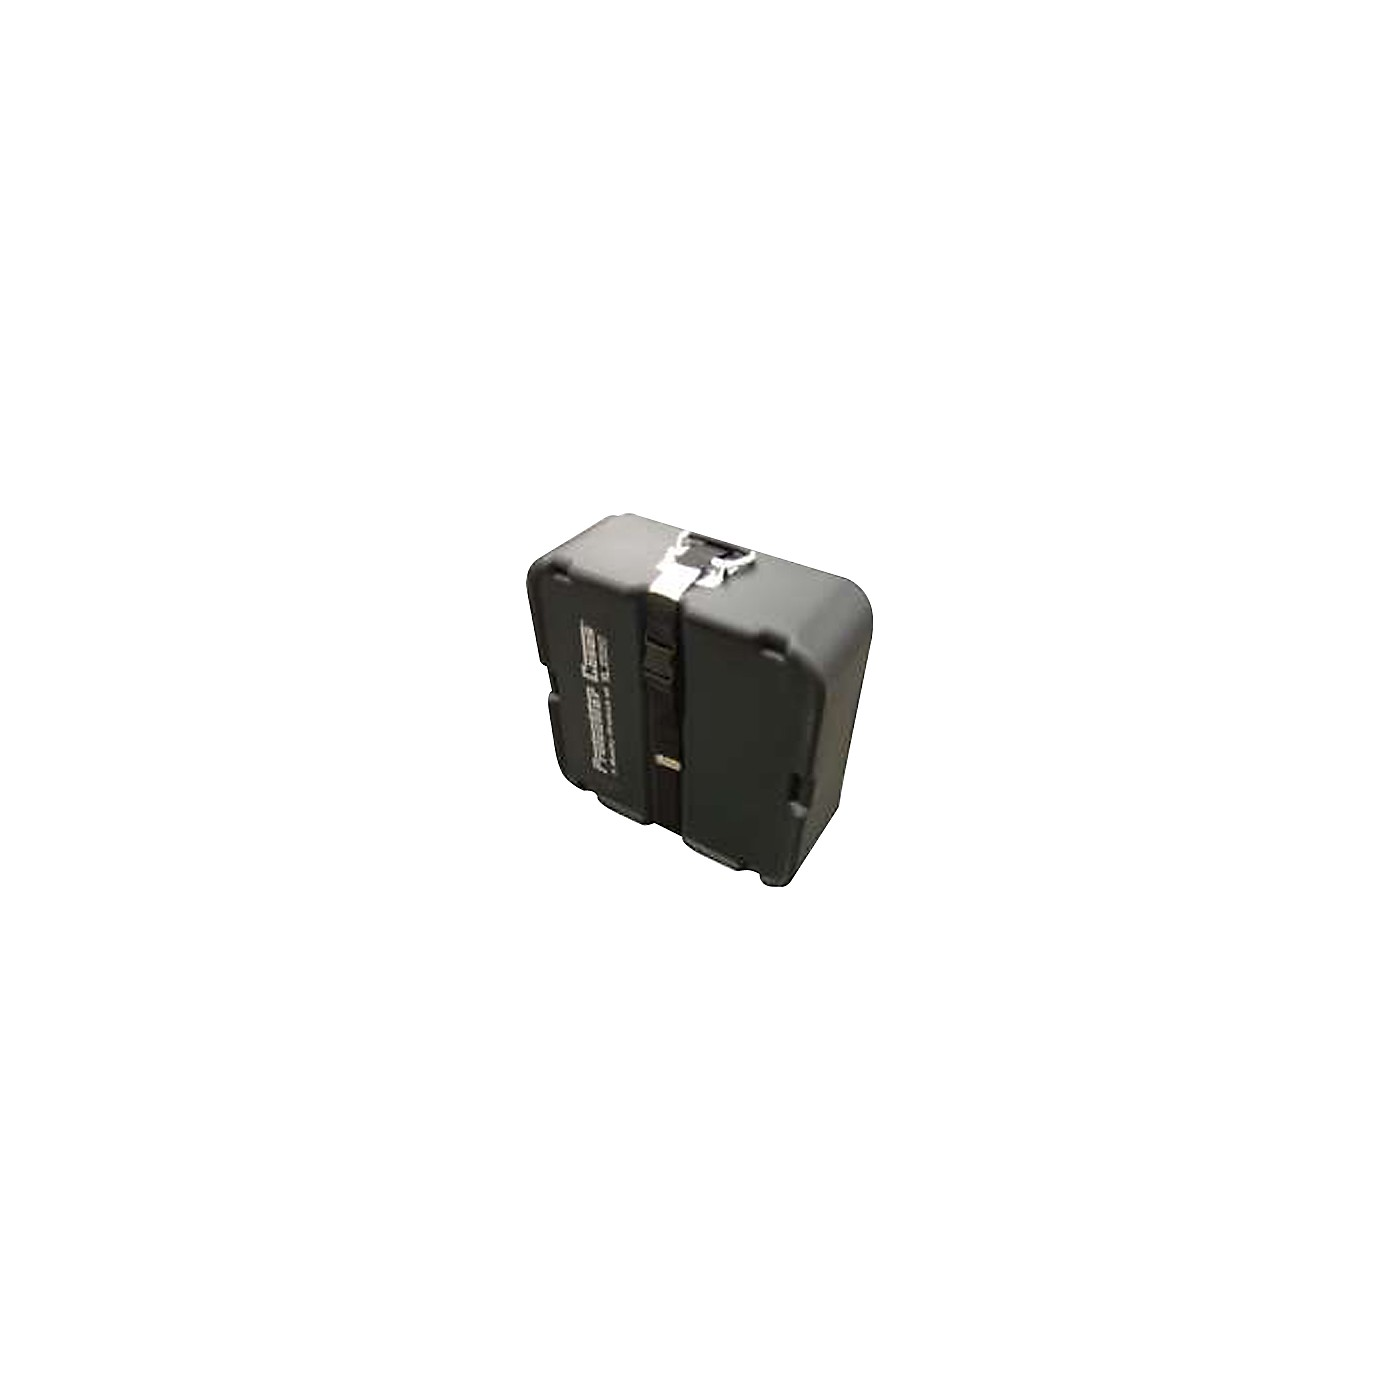 Protechtor Cases Protechtor Classic Snare Drum Case (Foam-lined) thumbnail